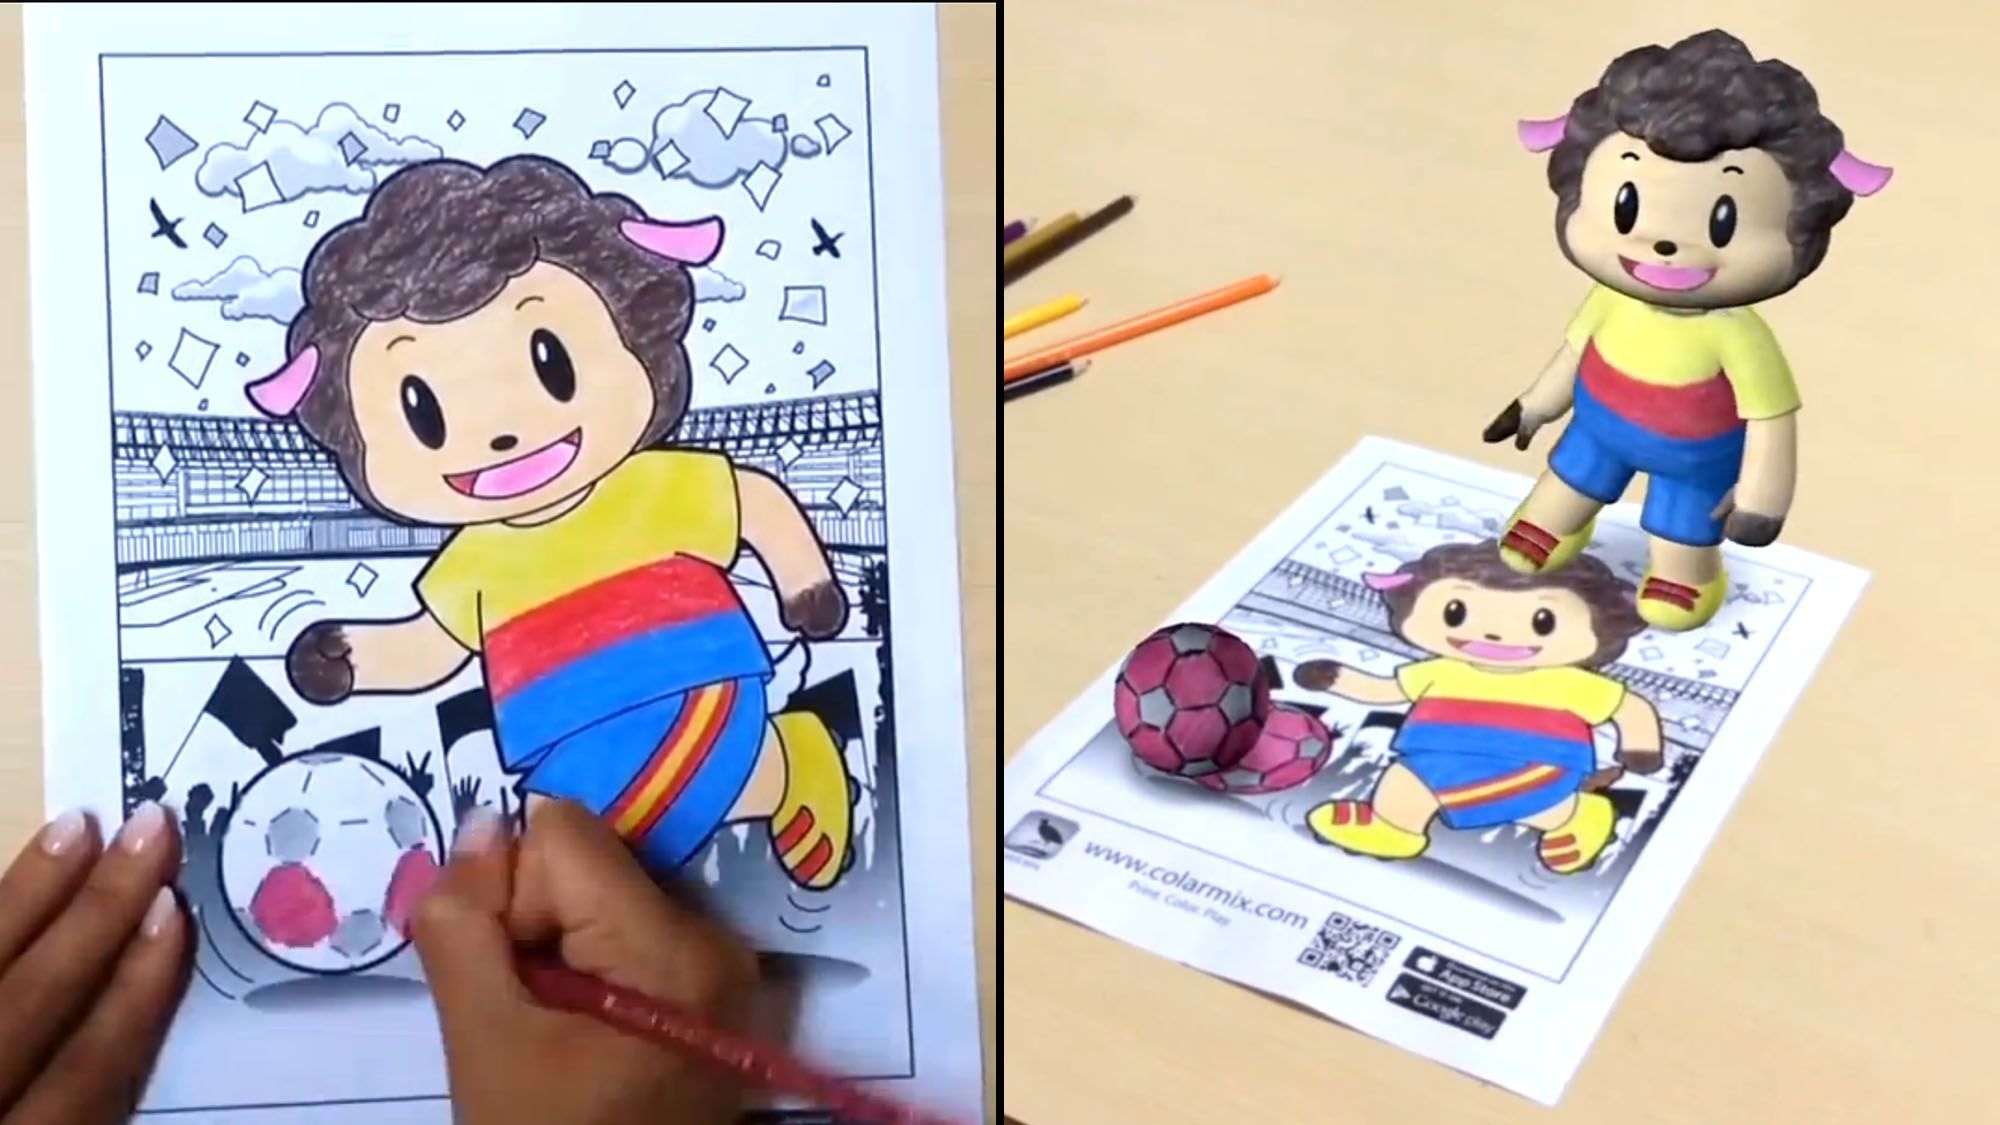 - 3 Apps Can Turn A Coloring Book Drawing Into A Moving 3D Image - MTV